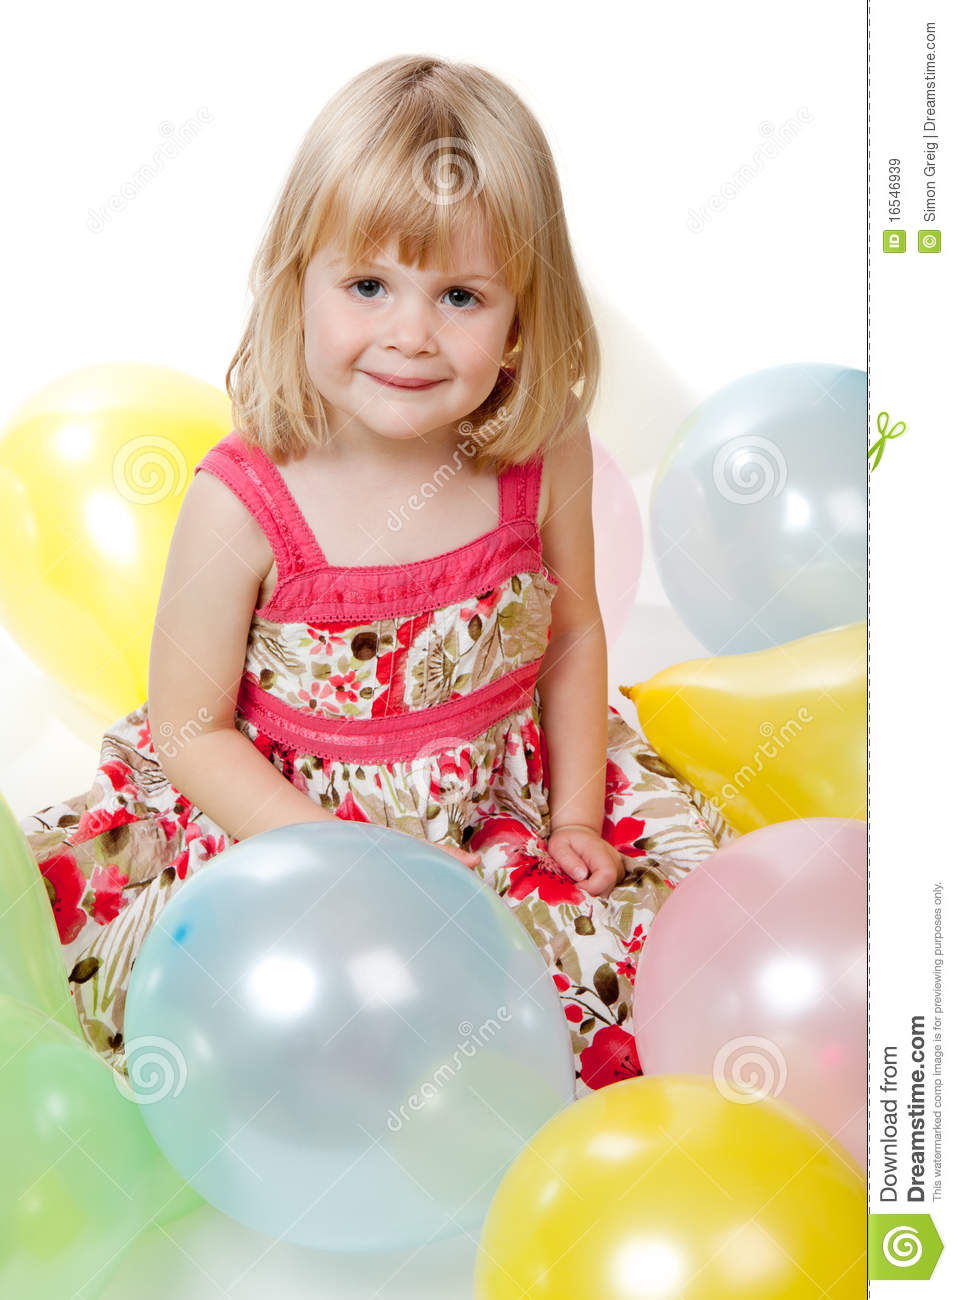 Four Year Two Year Community: 4 Year Old Girl Sitting With Balloons Royalty Free Stock